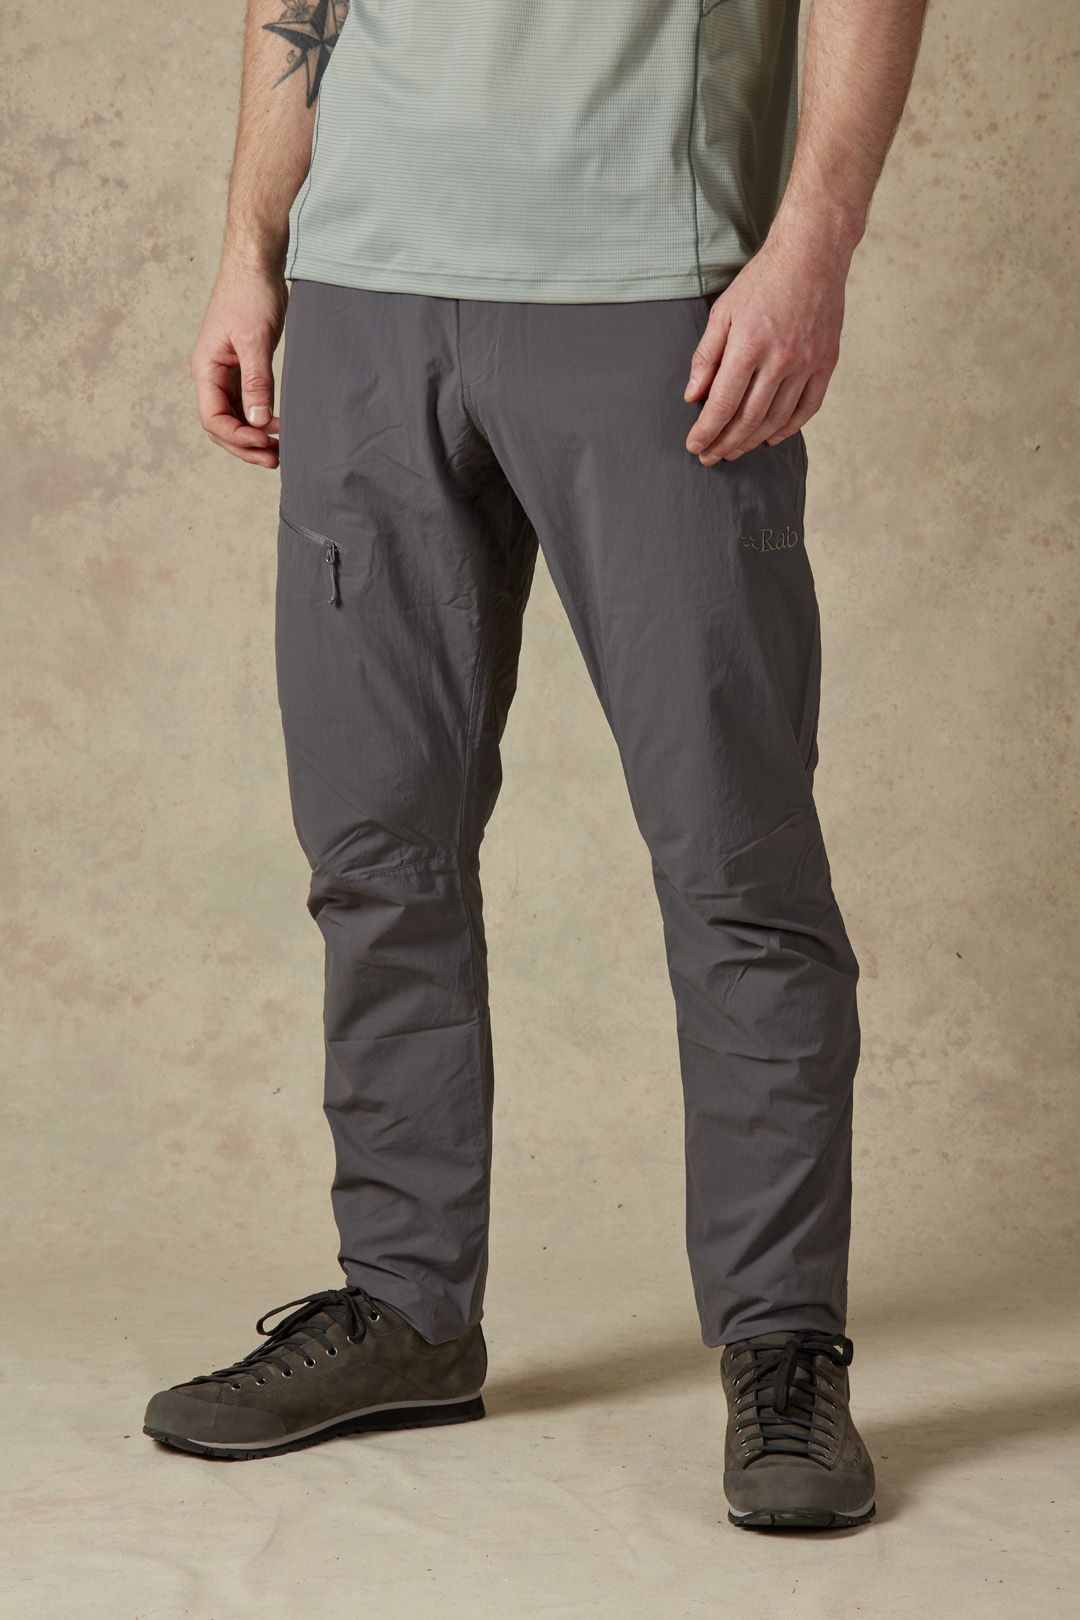 Rab Calient Pants Mens Graphene